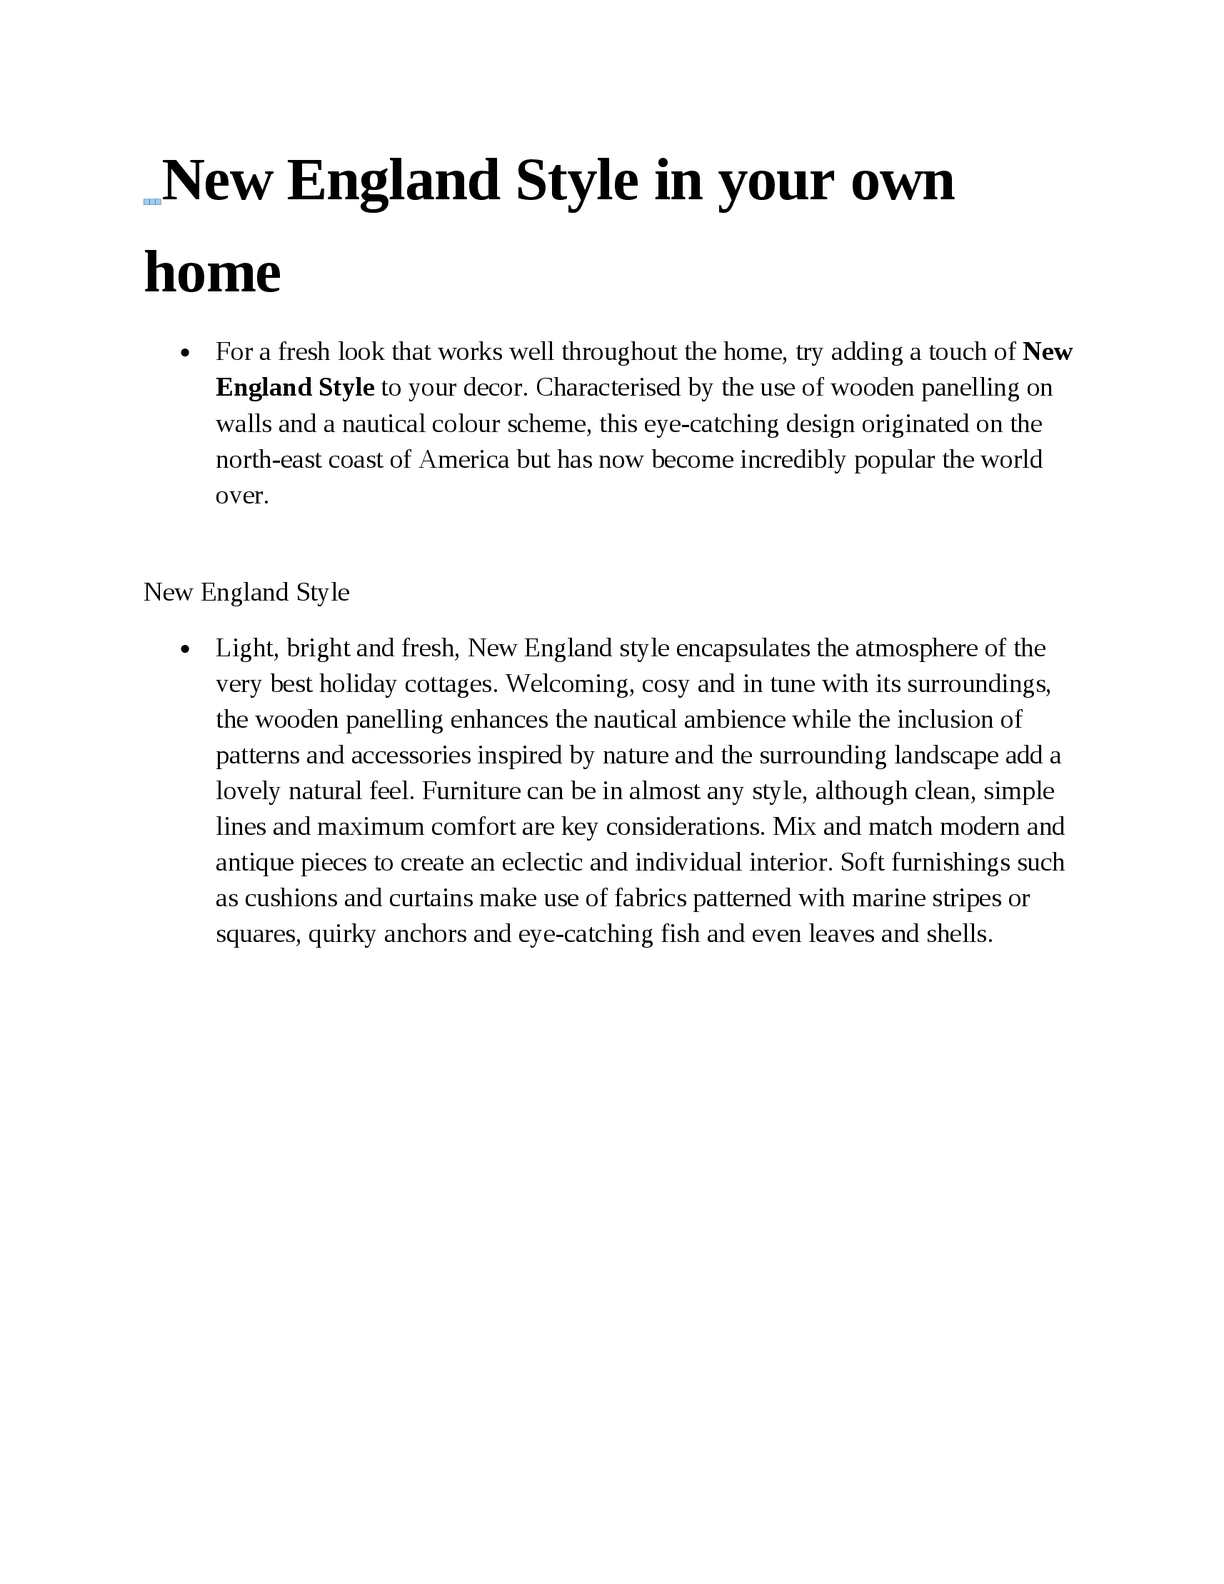 Calameo Create The New England Style In Your Own Home